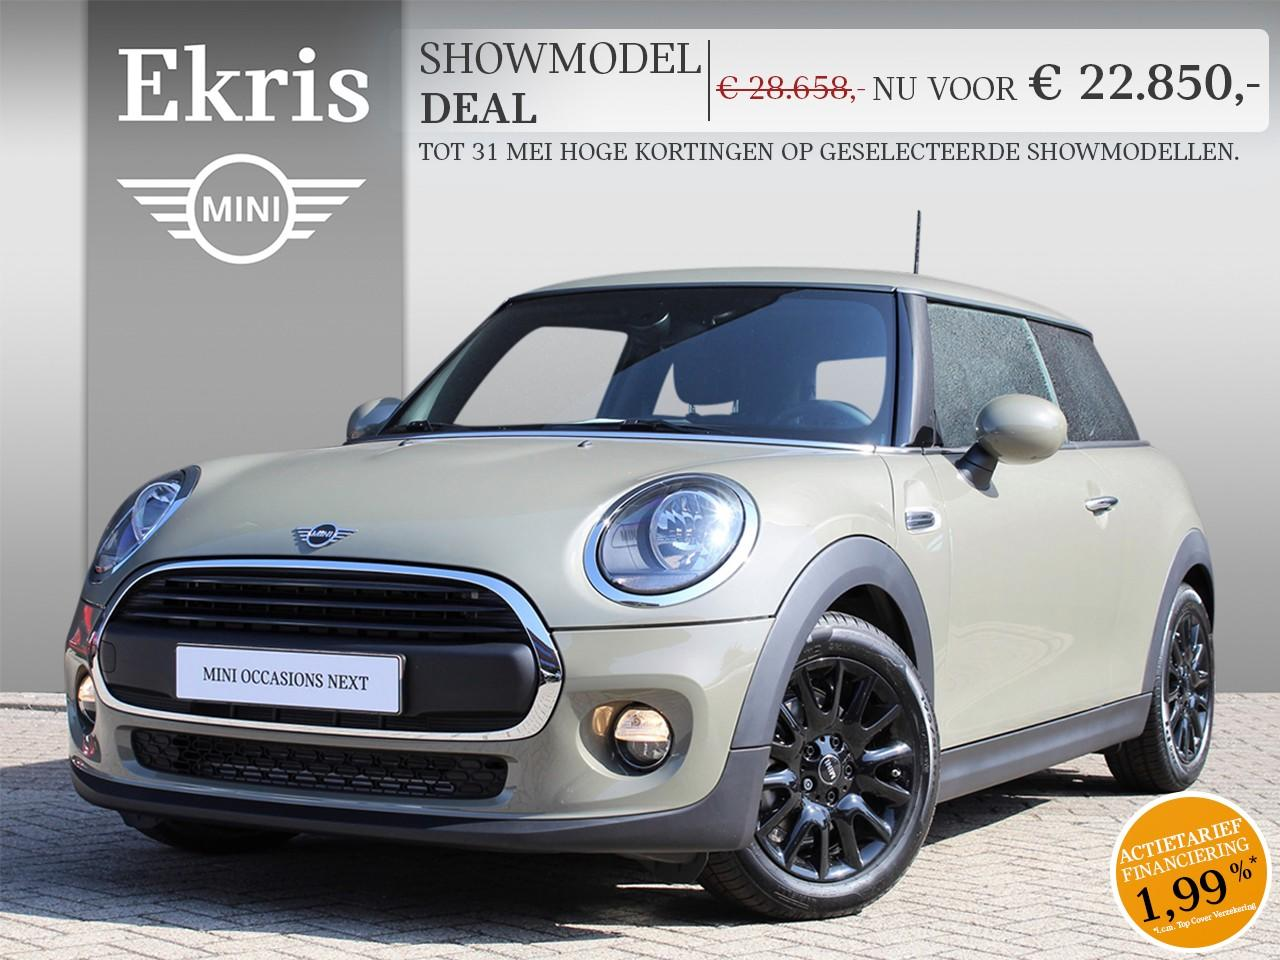 Mini 3-deurs One pepper + business - showmodel deal